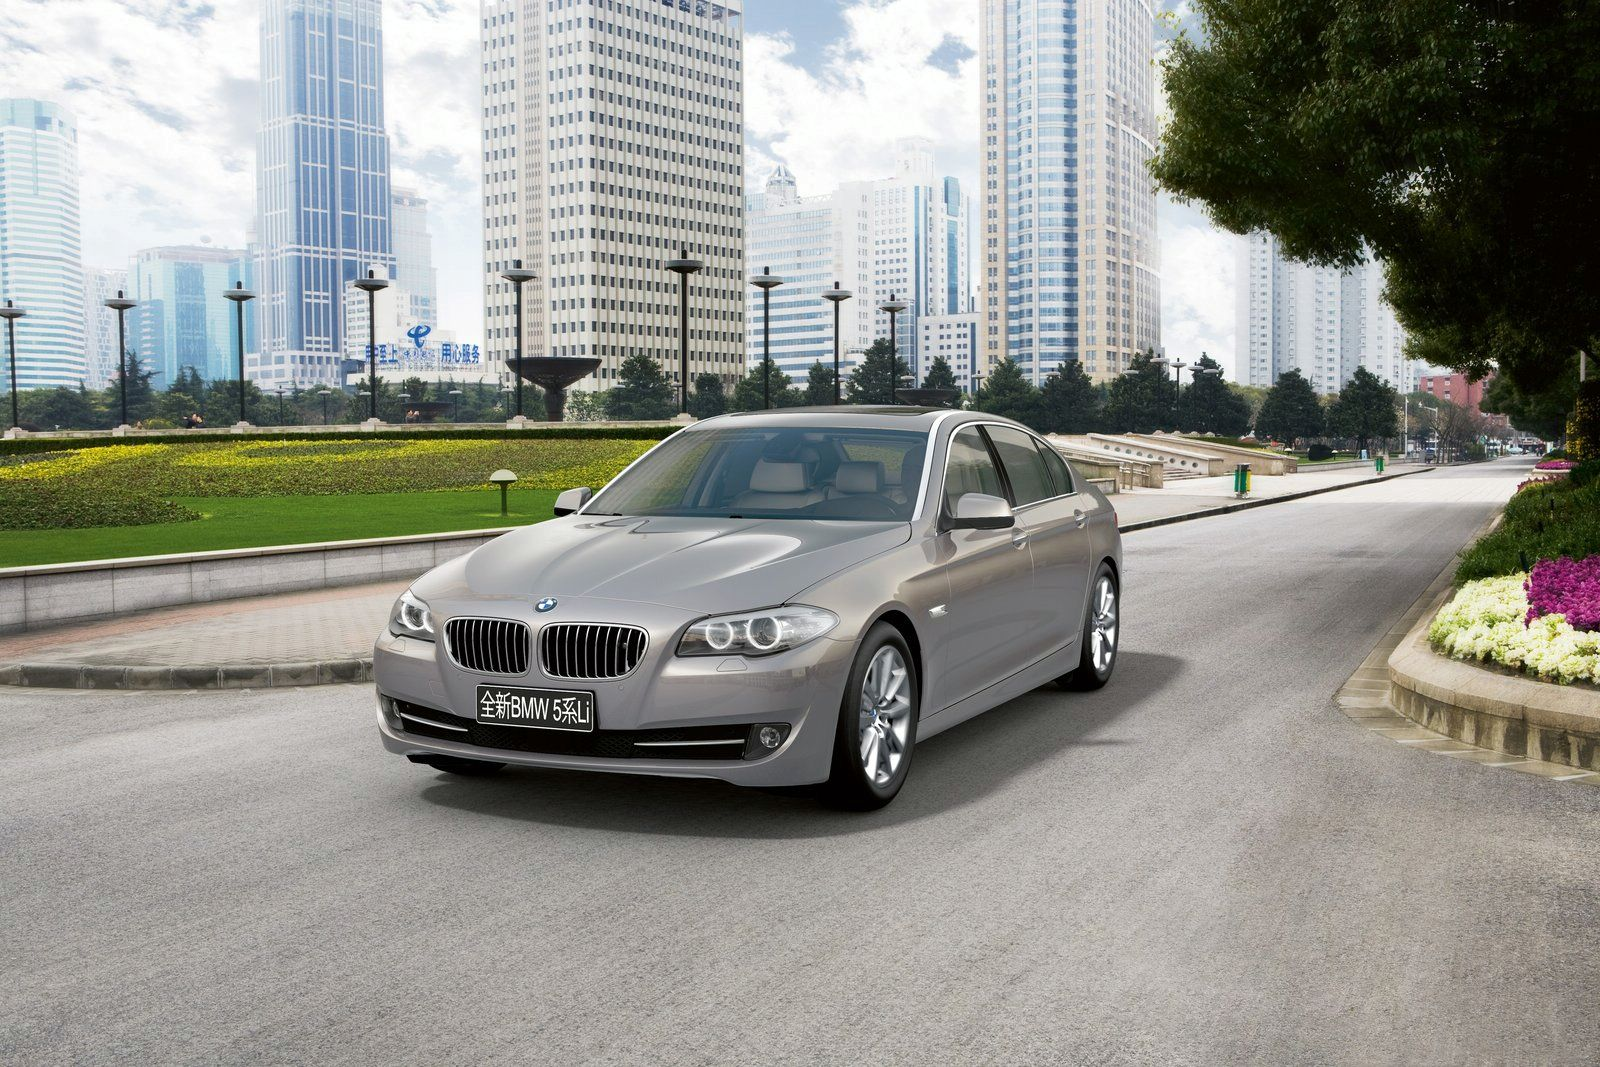 2011 Bmw 5 Series Long Wheelbase Revealed W Video Automotive Addicts